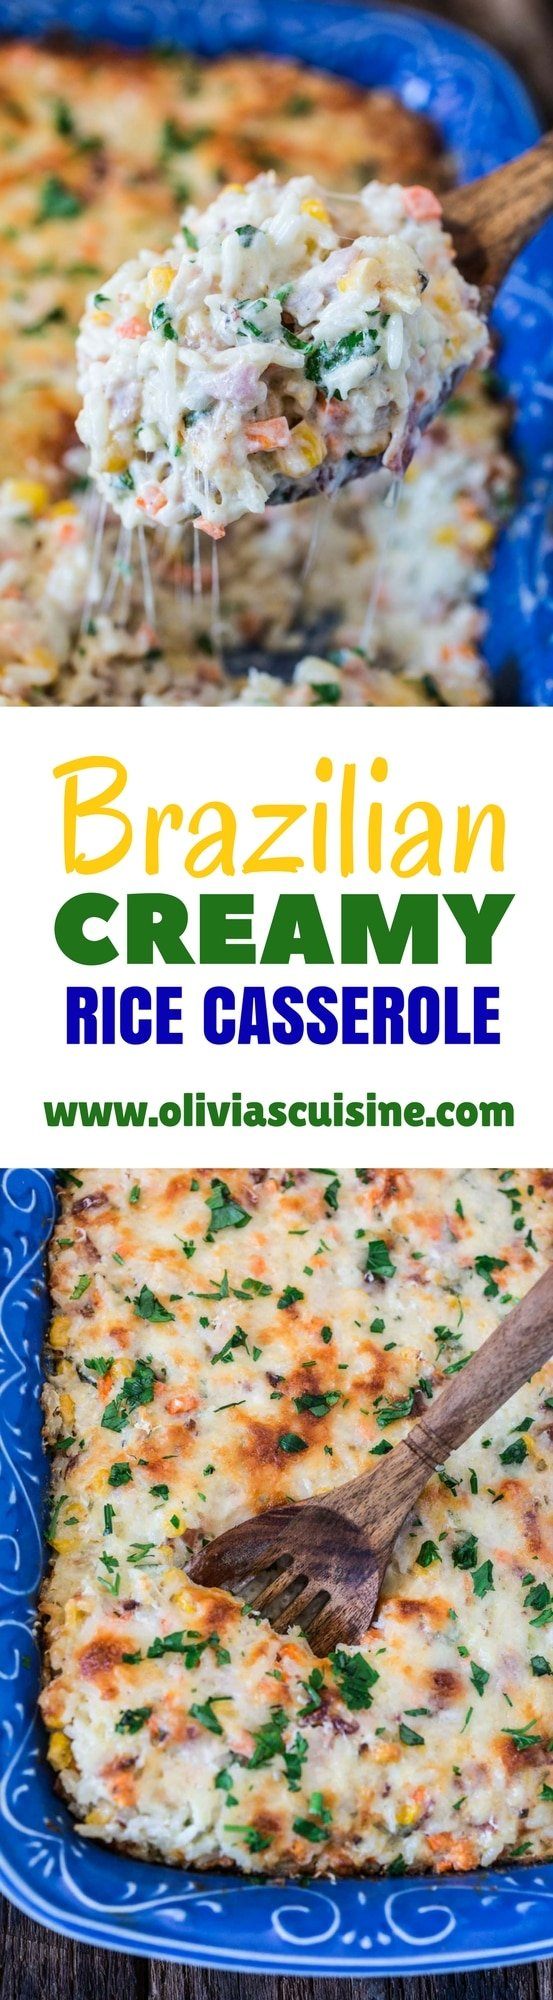 Brazilian Creamy Rice Casserole | www.oliviascuisine.com | This Brazilian Creamy Rice Casserole is not only delicious but VERY easy and quick to prepare. It is ready in 20 minutes and is a great way to use up the leftovers in your fridge!